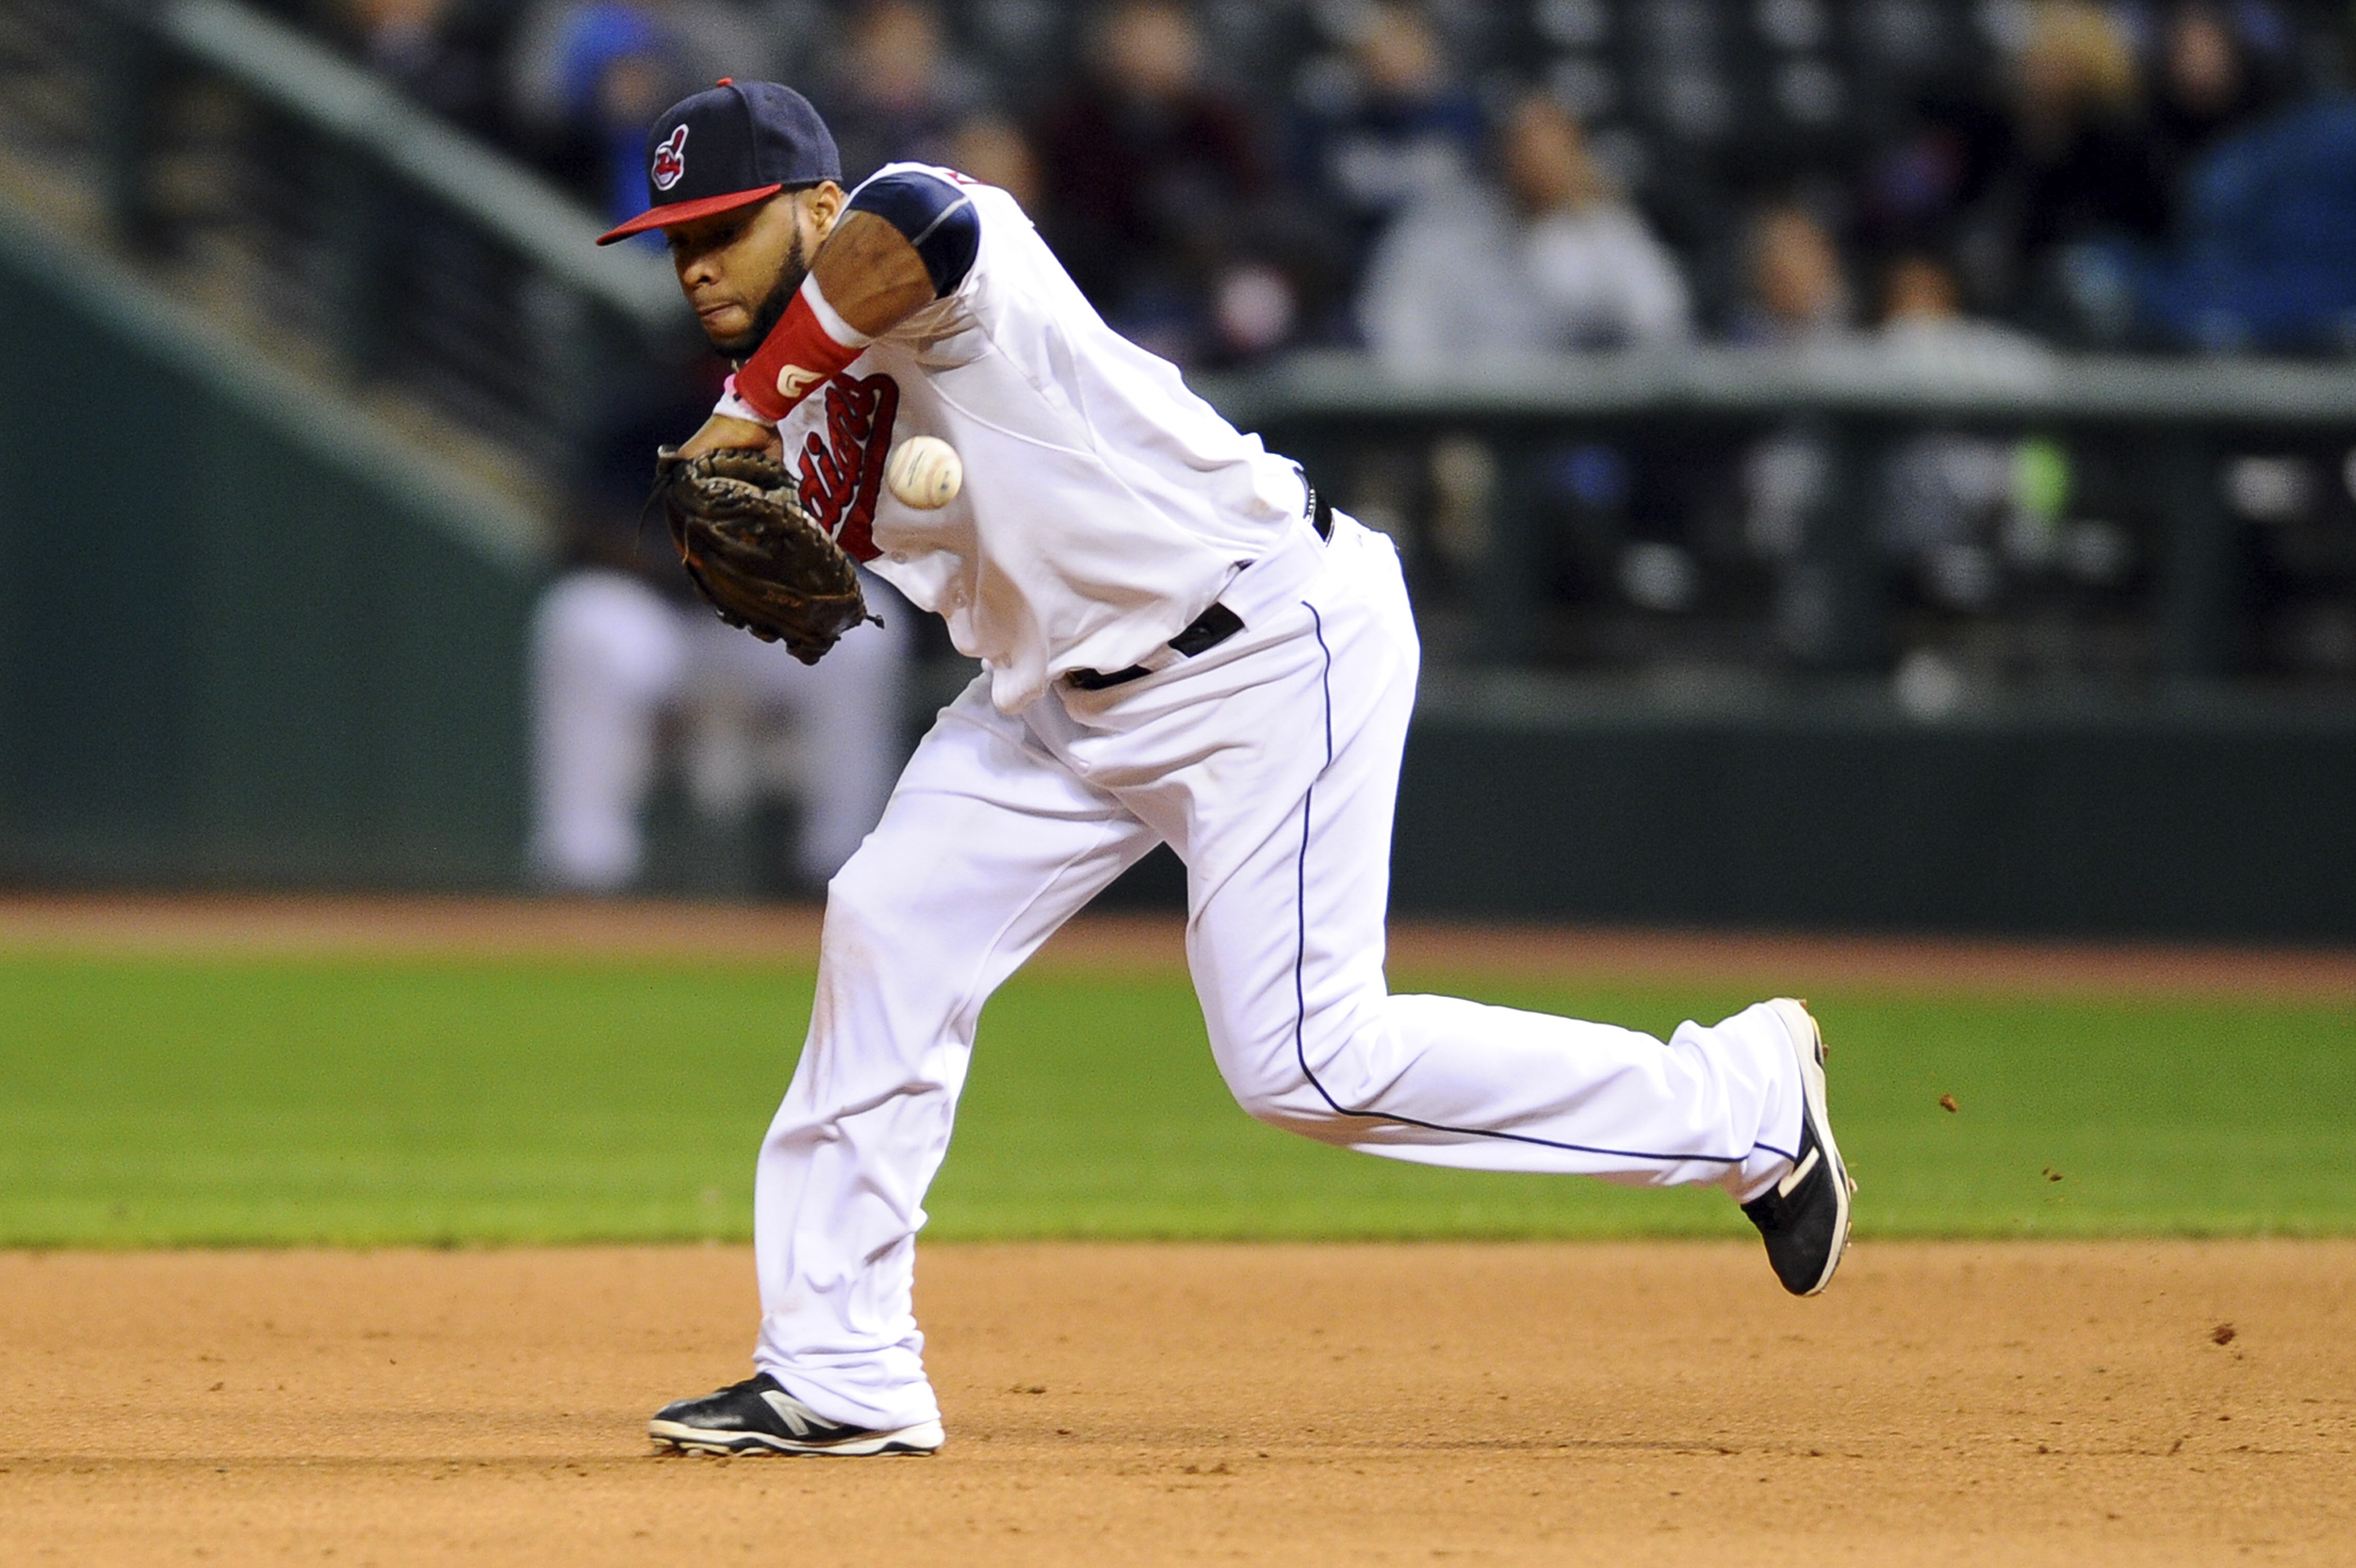 This is likely why Carlos Santana is moving to designated hitter this year.